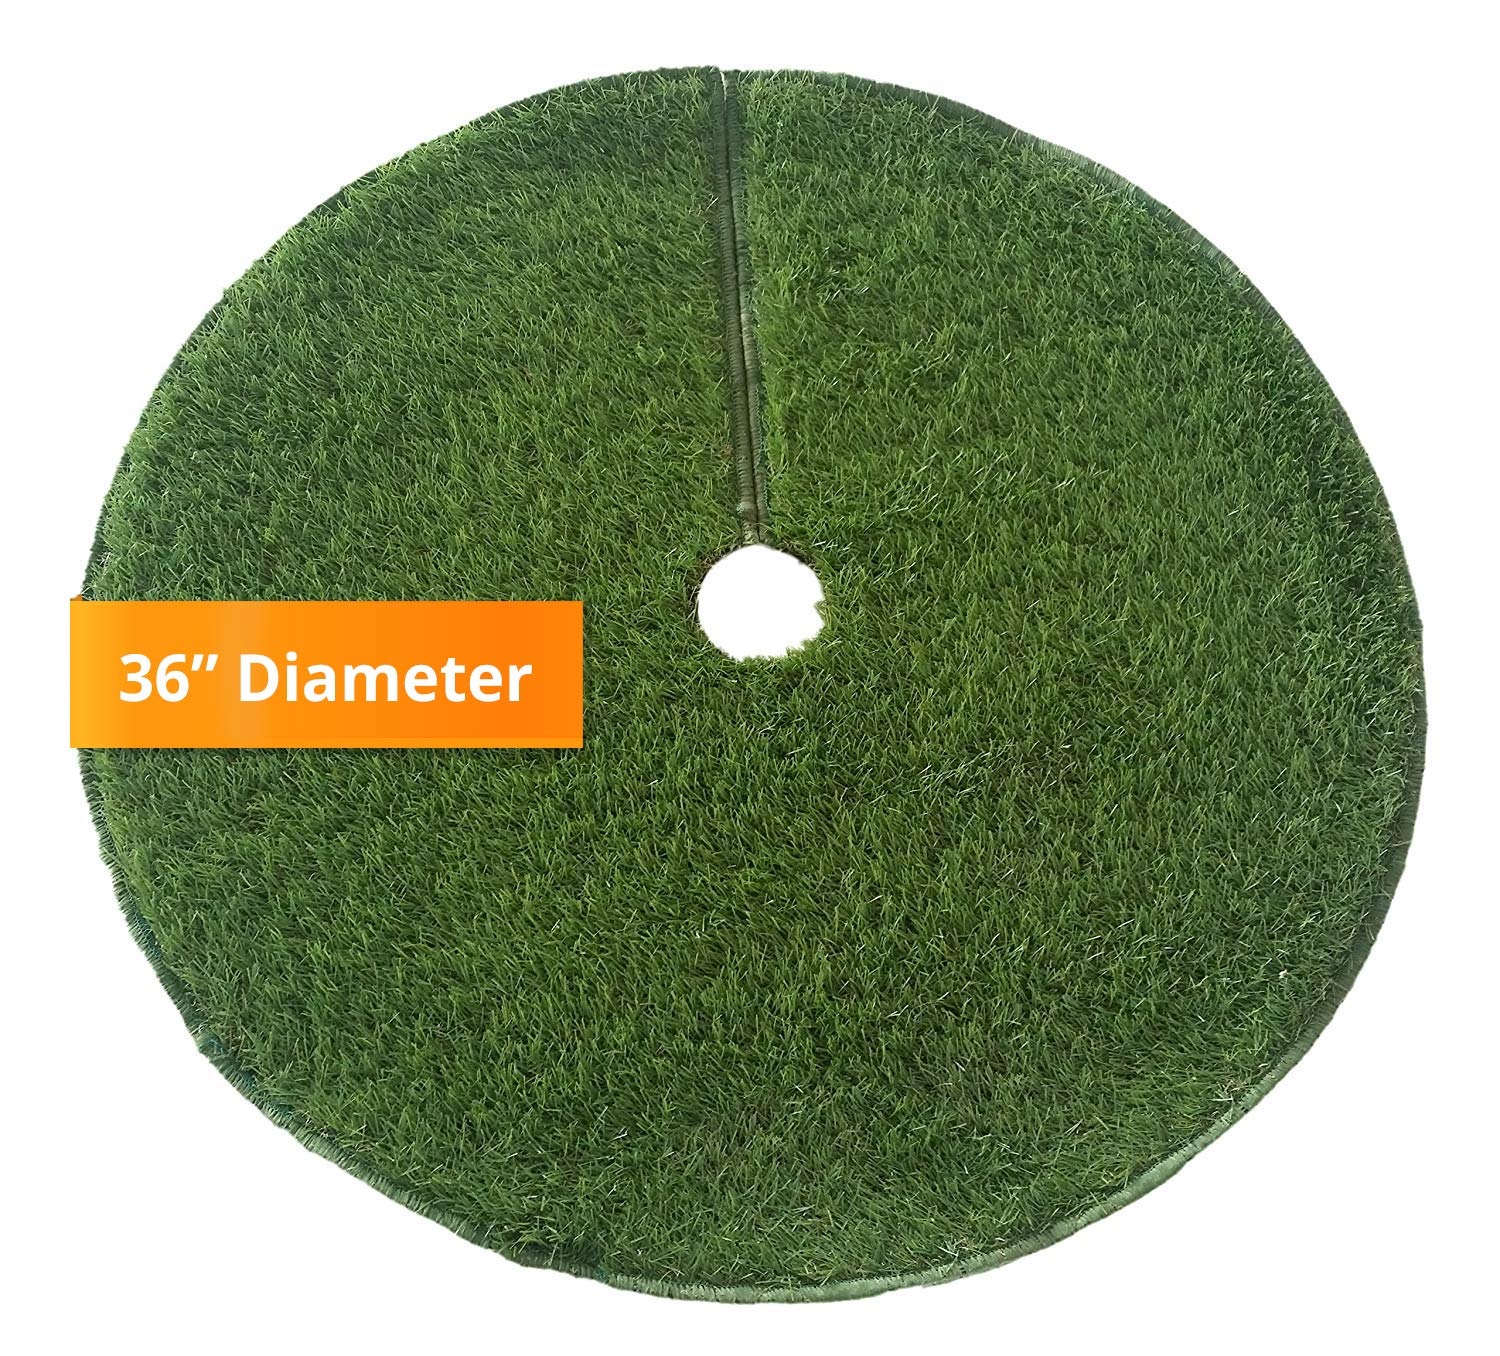 Zen Garden Artificial Grass Christmas Tree Skirt w//Anti-Slip Rubber Base w//Binding Green 36 Dia Unique Holiday Decorations   Realistic Synthetic Grass Rug Indoor /& Outdoor Xmas Tree Skirts